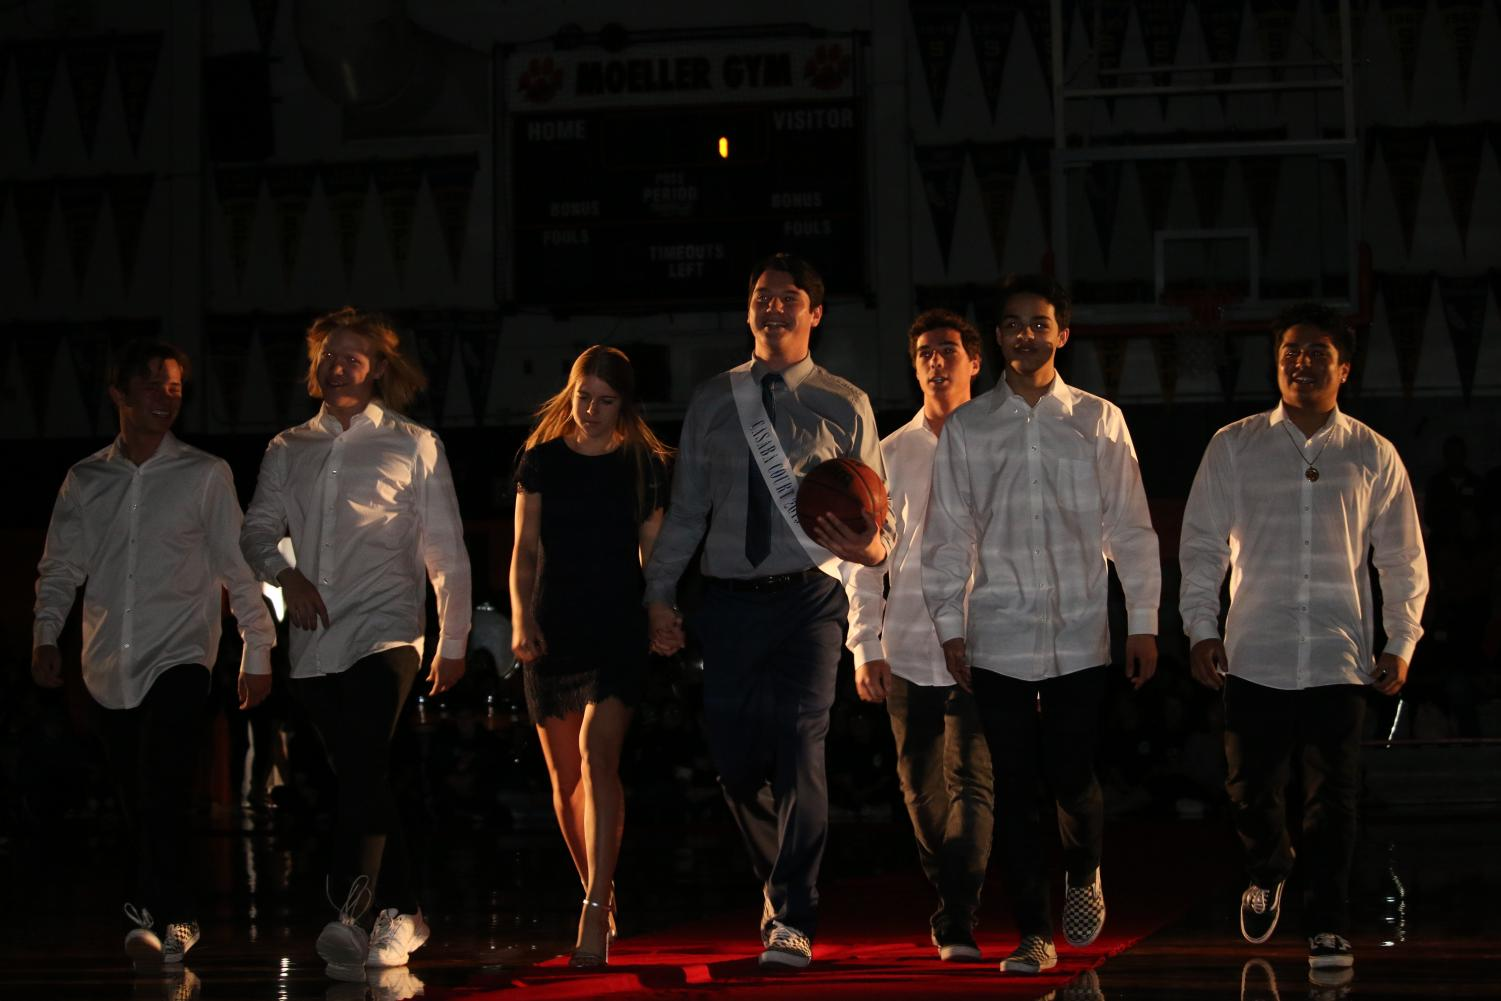 Jackson+Esparza%2C+Casaba+King+nominee%2C+walks+the+red+carpet+with+girlfriend+and+friends.+